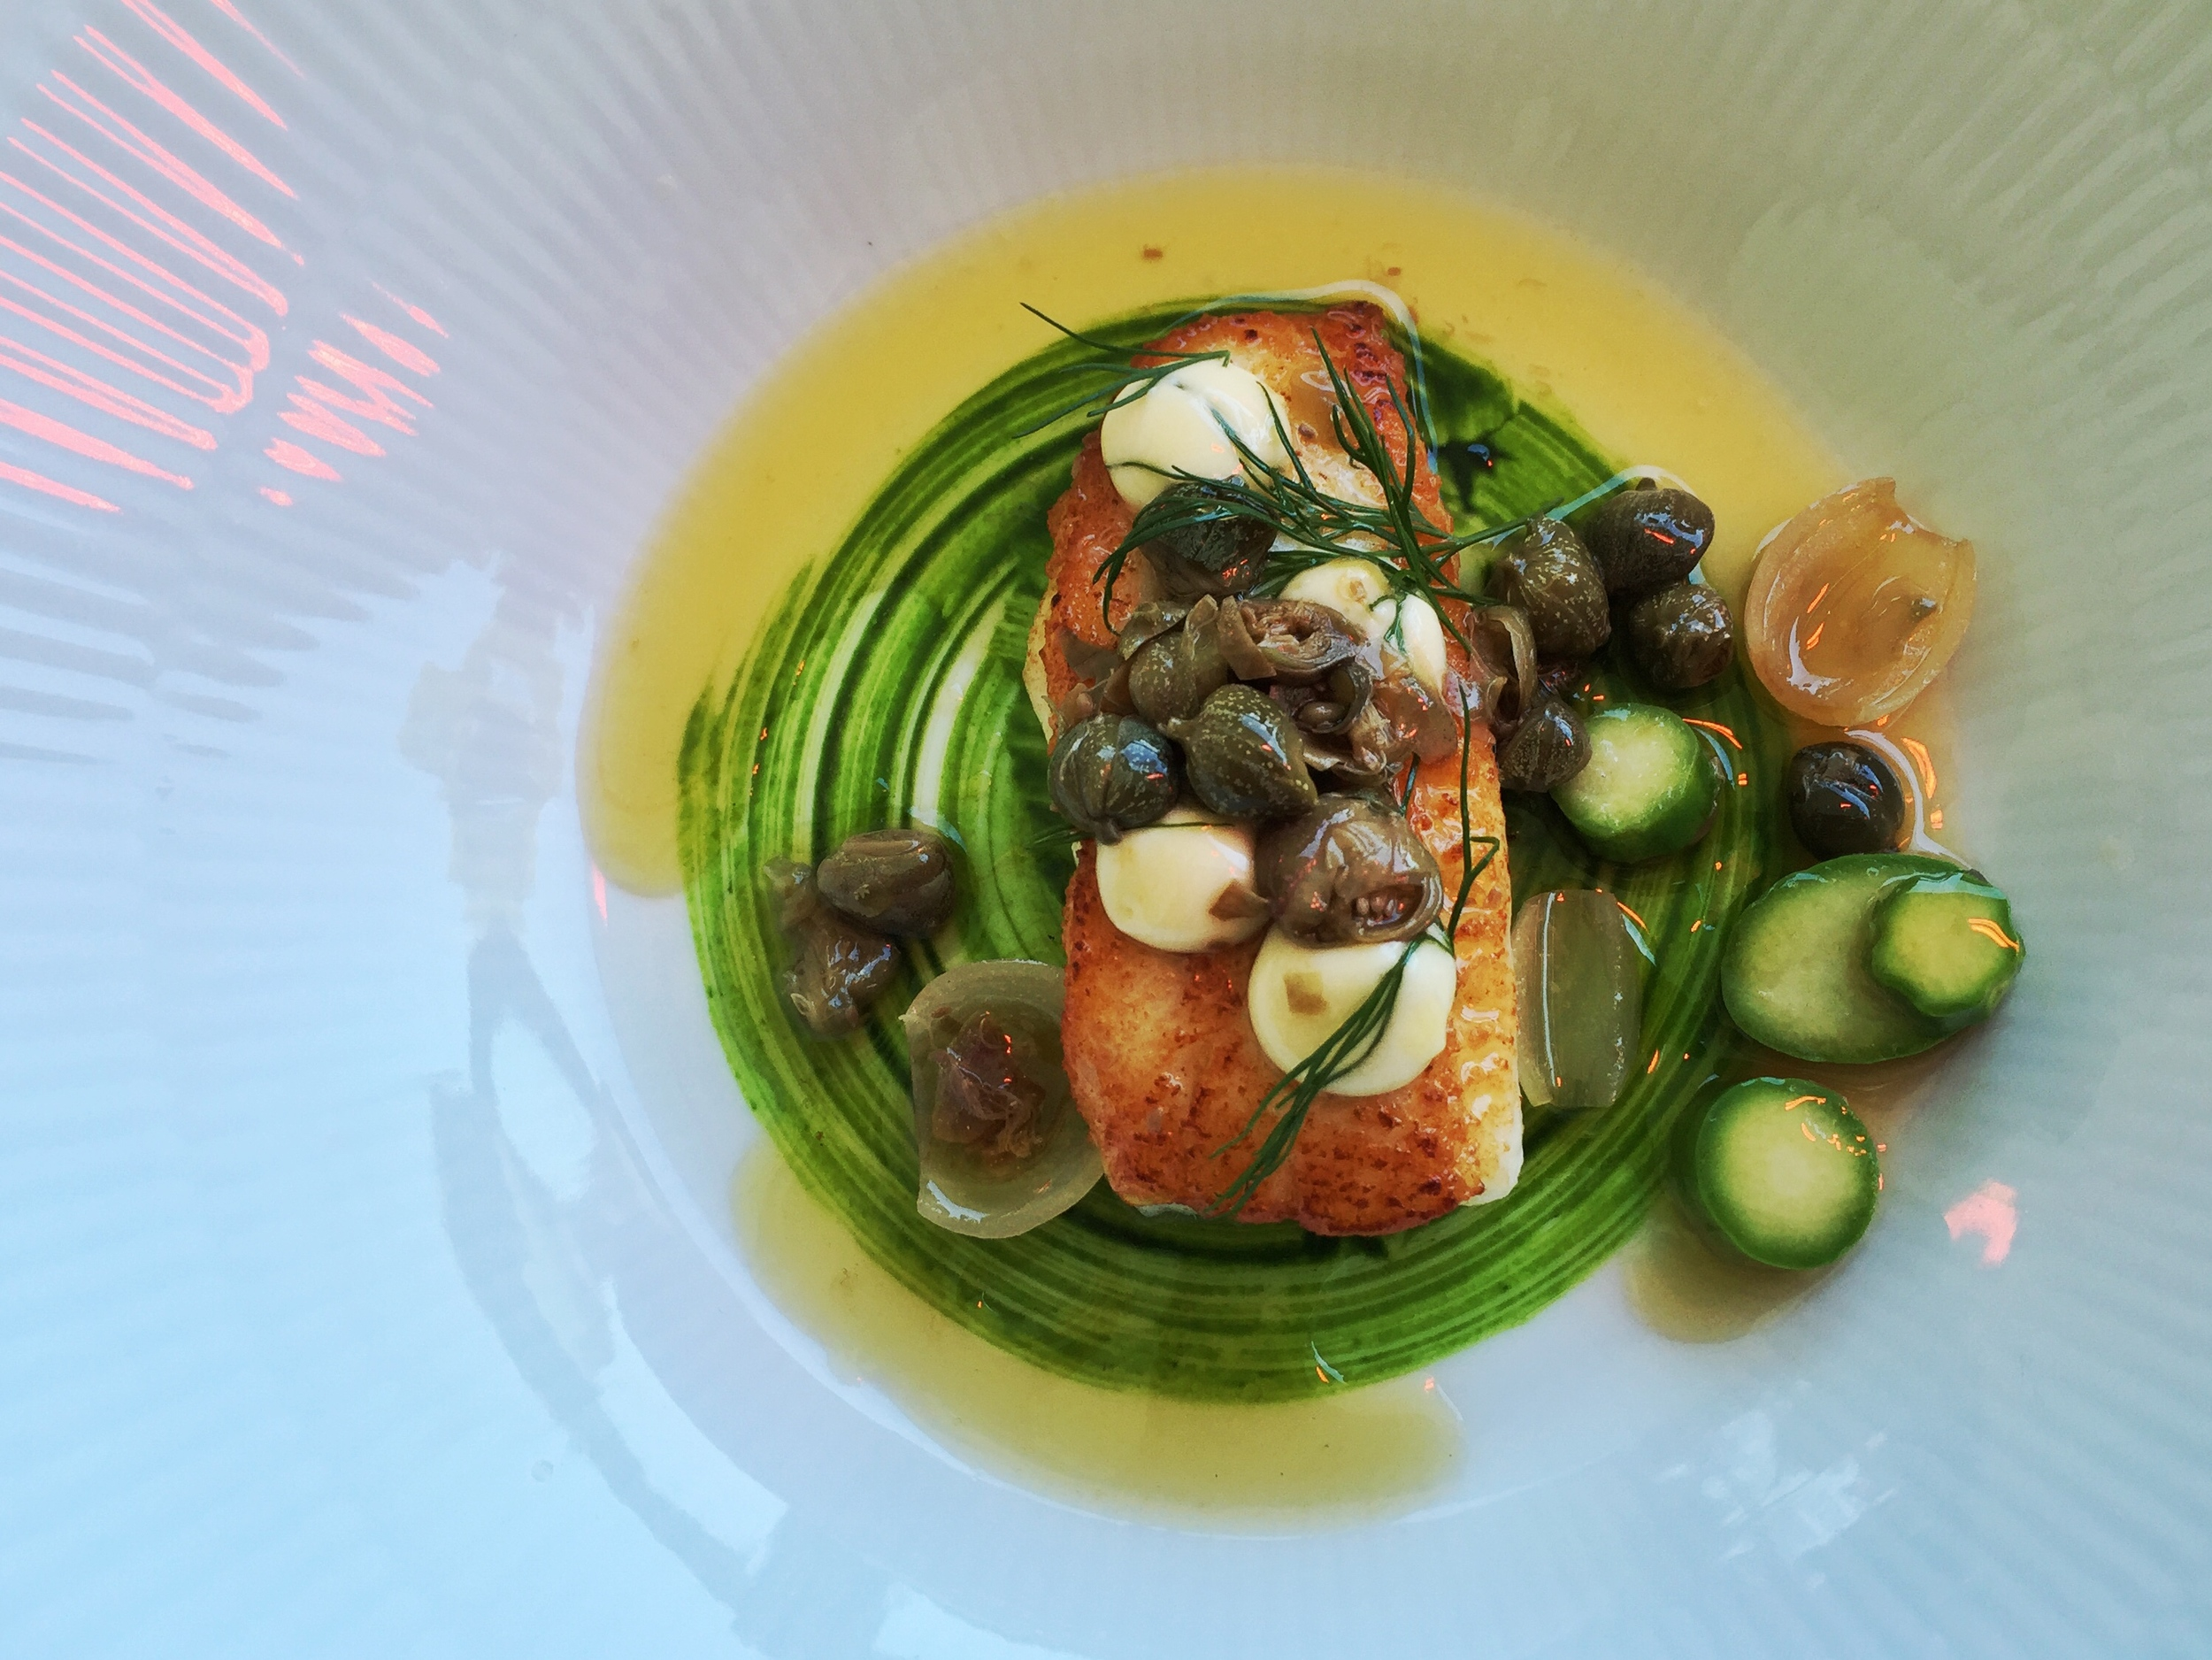 Poached black cod with vegetables.